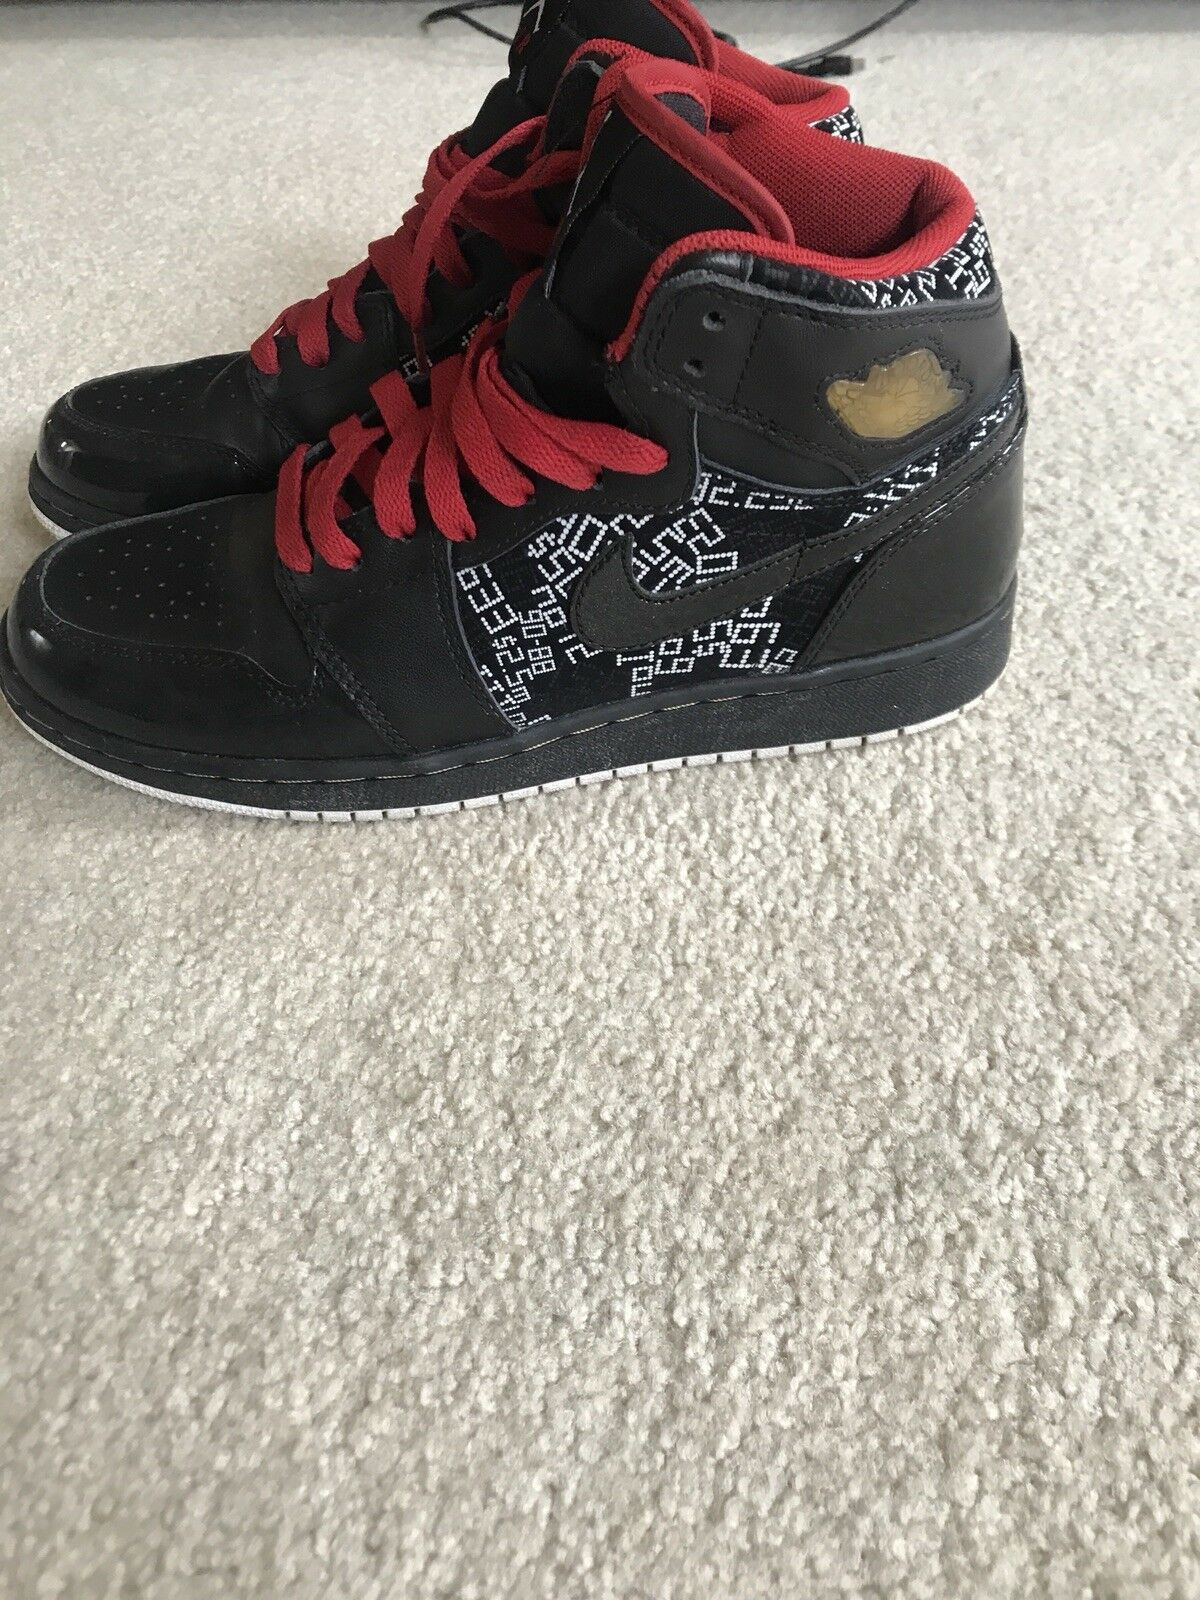 Air Jordan 1 Retro High Hall Of Of Of Fame Dimensione 6.5 nero Varsity rosso oro Metallic b03c7a